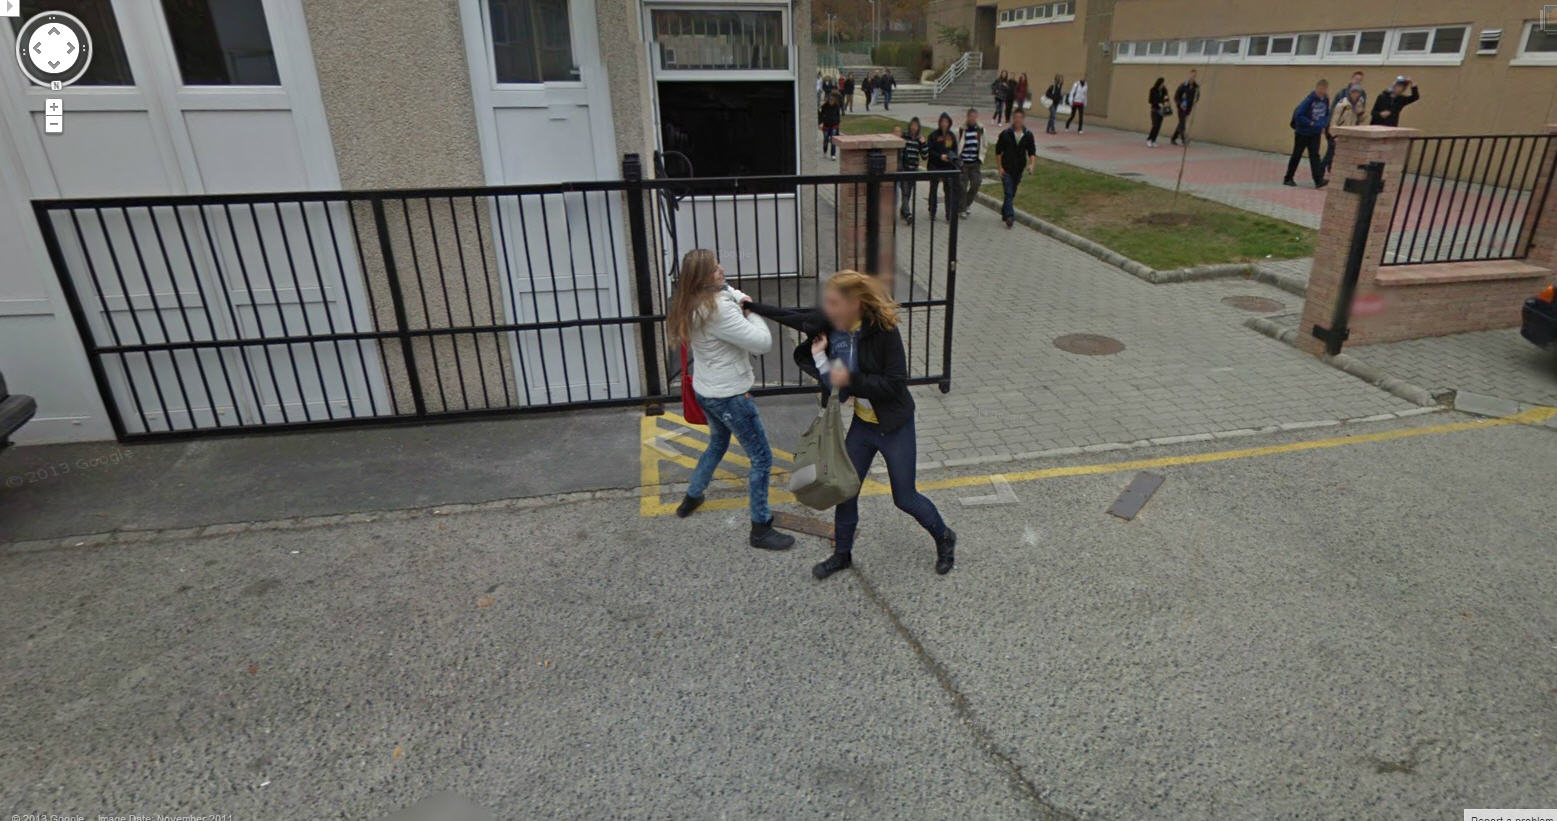 Google Captures a Couple of Teen Girls Fighting